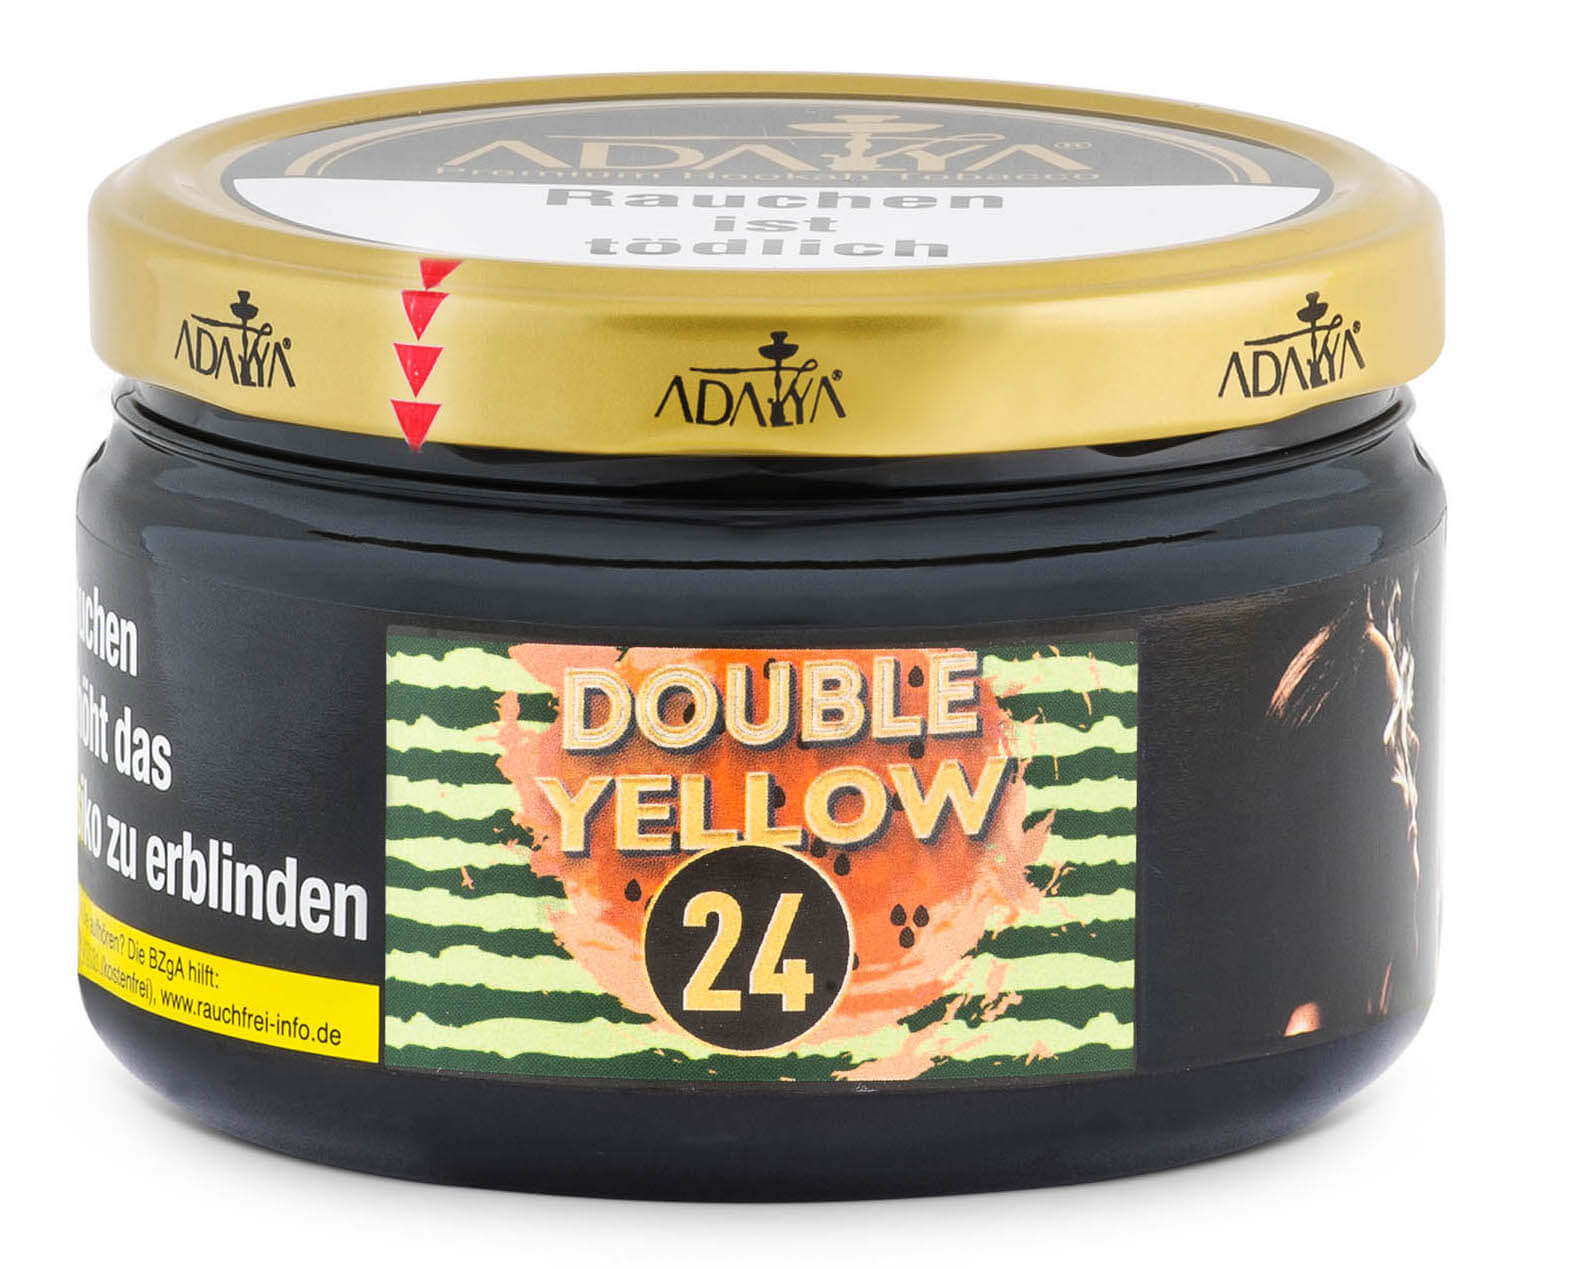 Adalya Tabak Double Yellow #24 200g Dose